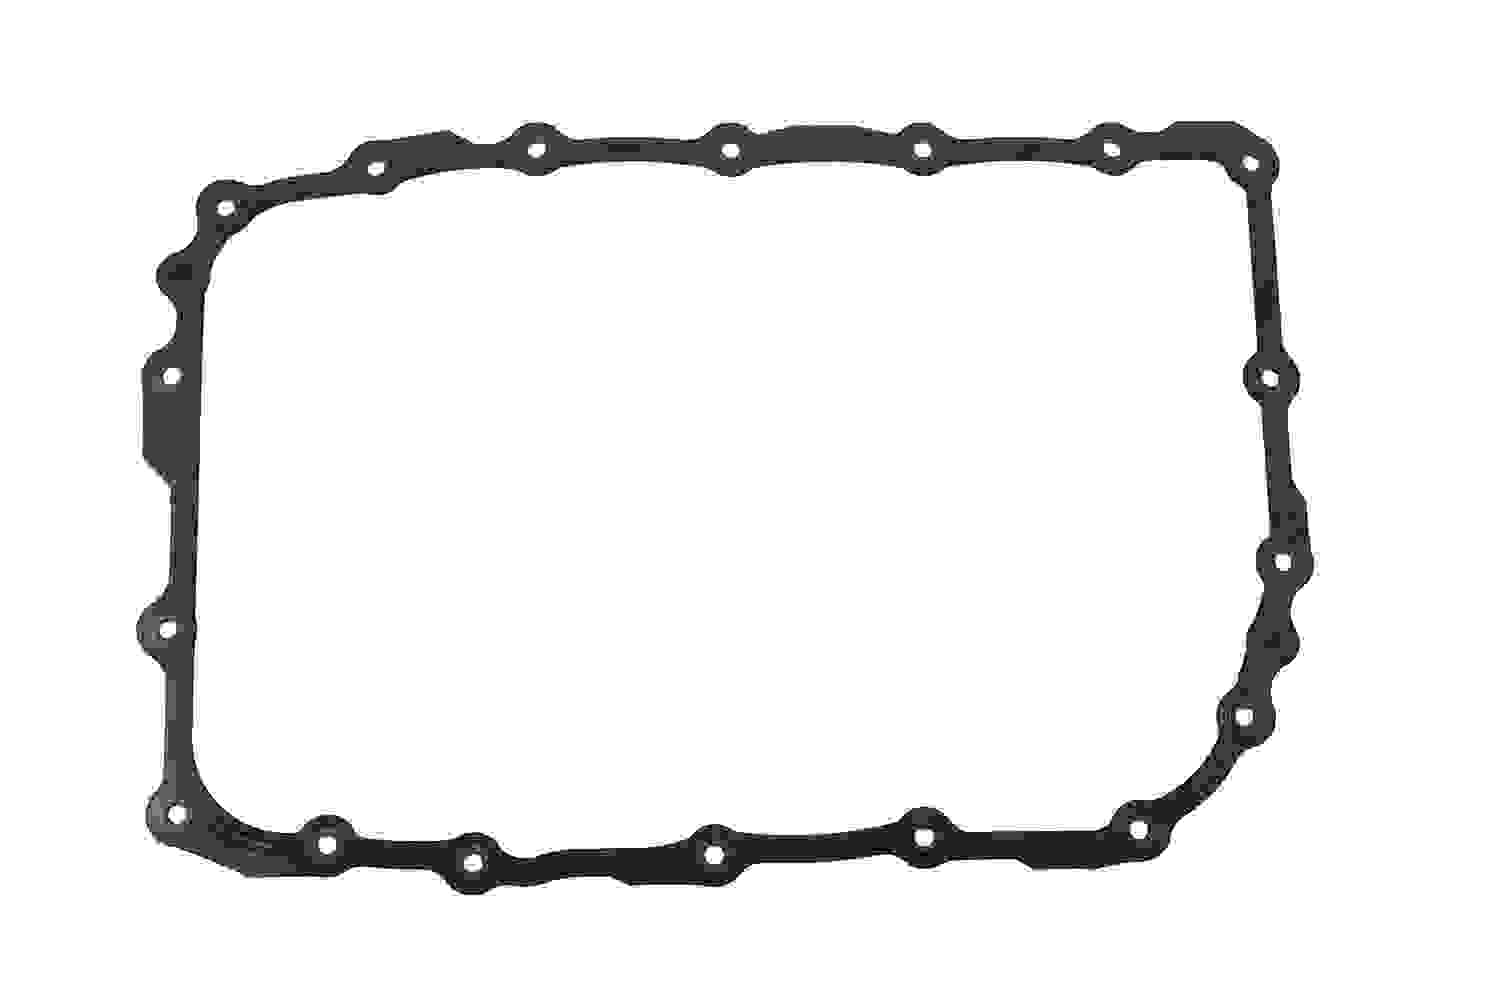 ACDELCO GM ORIGINAL EQUIPMENT - Transmission Oil Pan Gasket - DCB 24224781